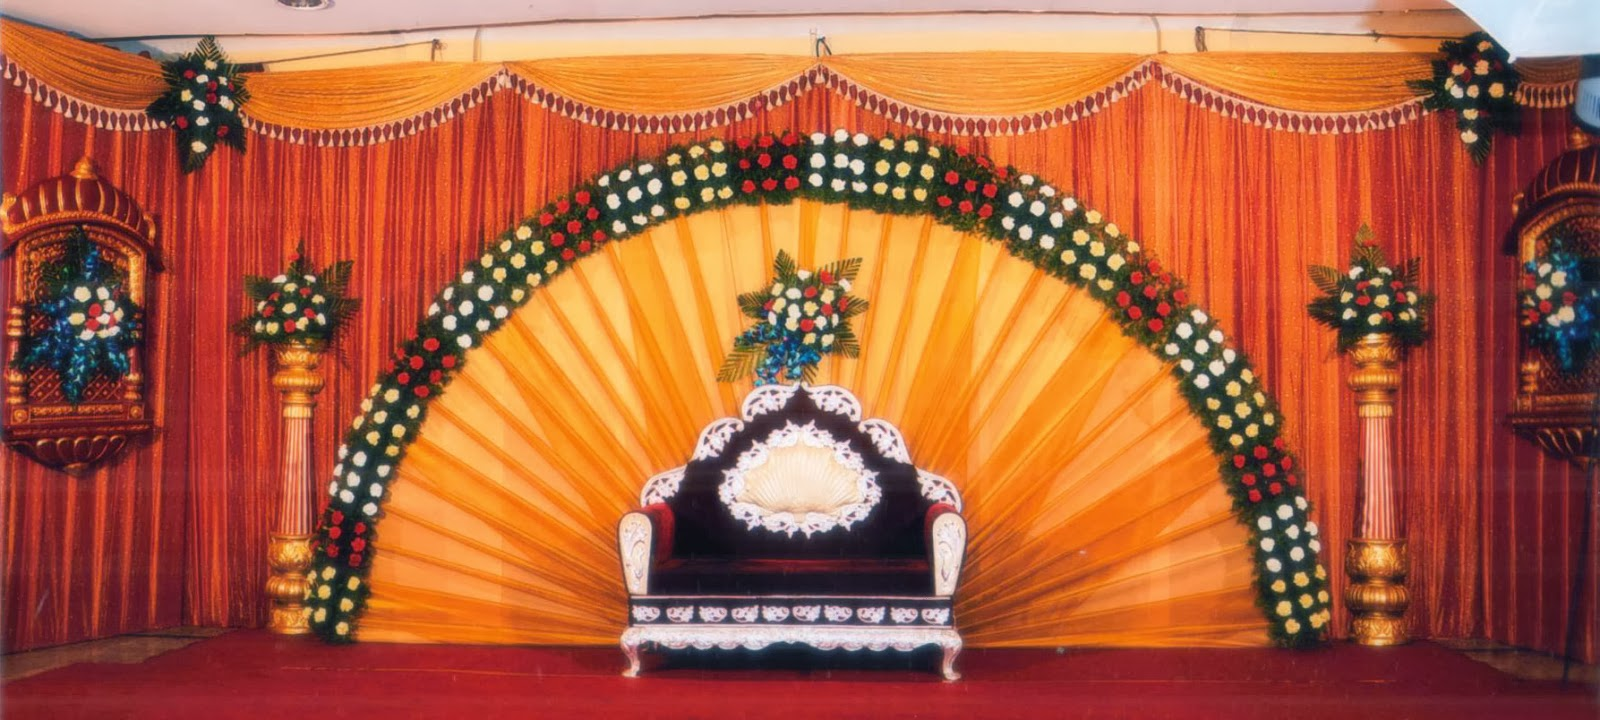 Kerala hindu wedding stage decoration photos driverlayer for Background decoration for indian wedding